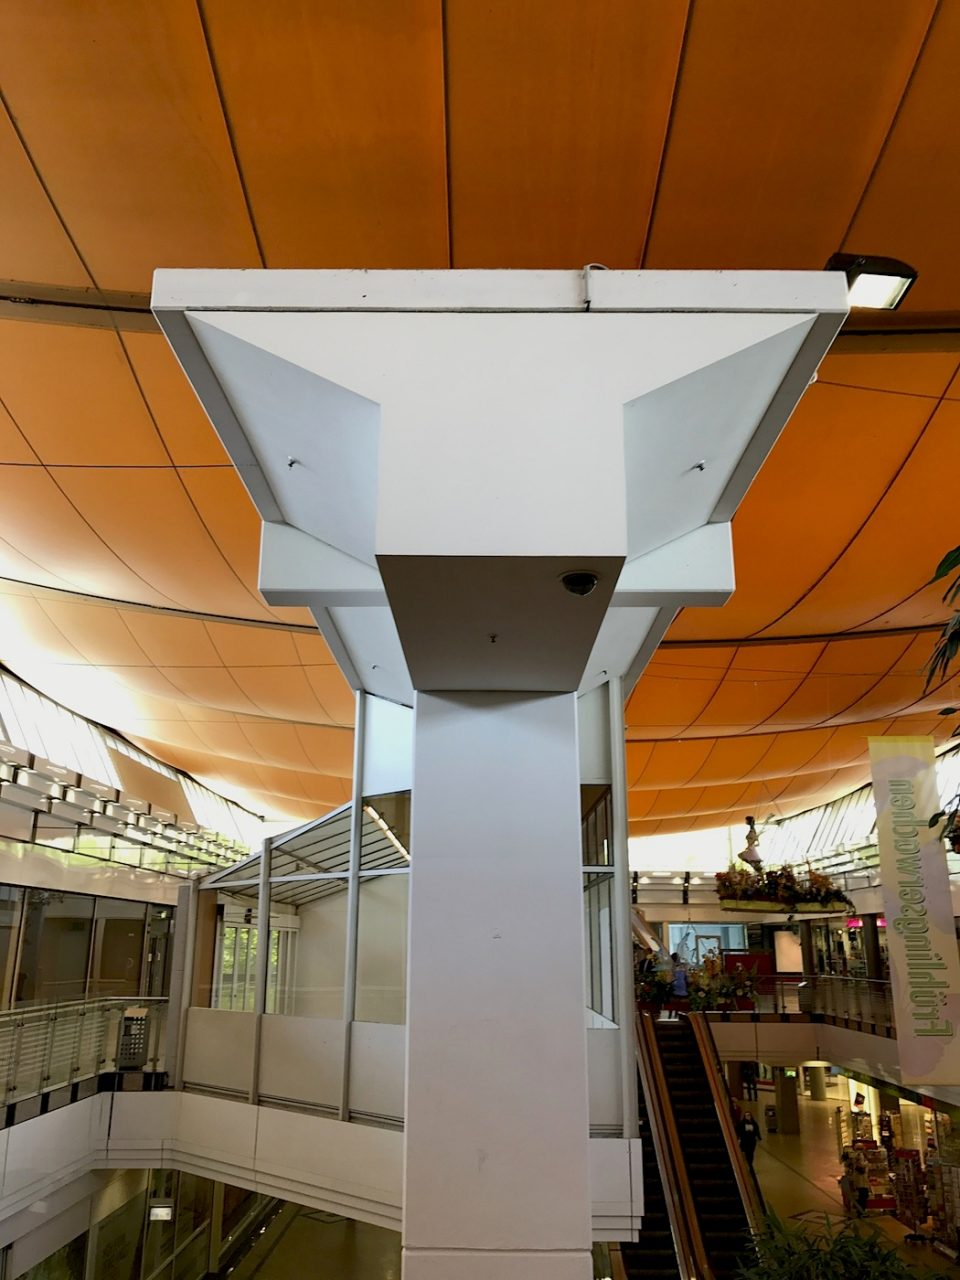 Marler Stern.  In the following years, the Marler Stern shopping mall with Europe's largest air cushion roof, the Karstadt department store, the buildings of the insel-VHS, the Riegelhaus, the car park, and the central bus station above Bergstrasse were constructed.